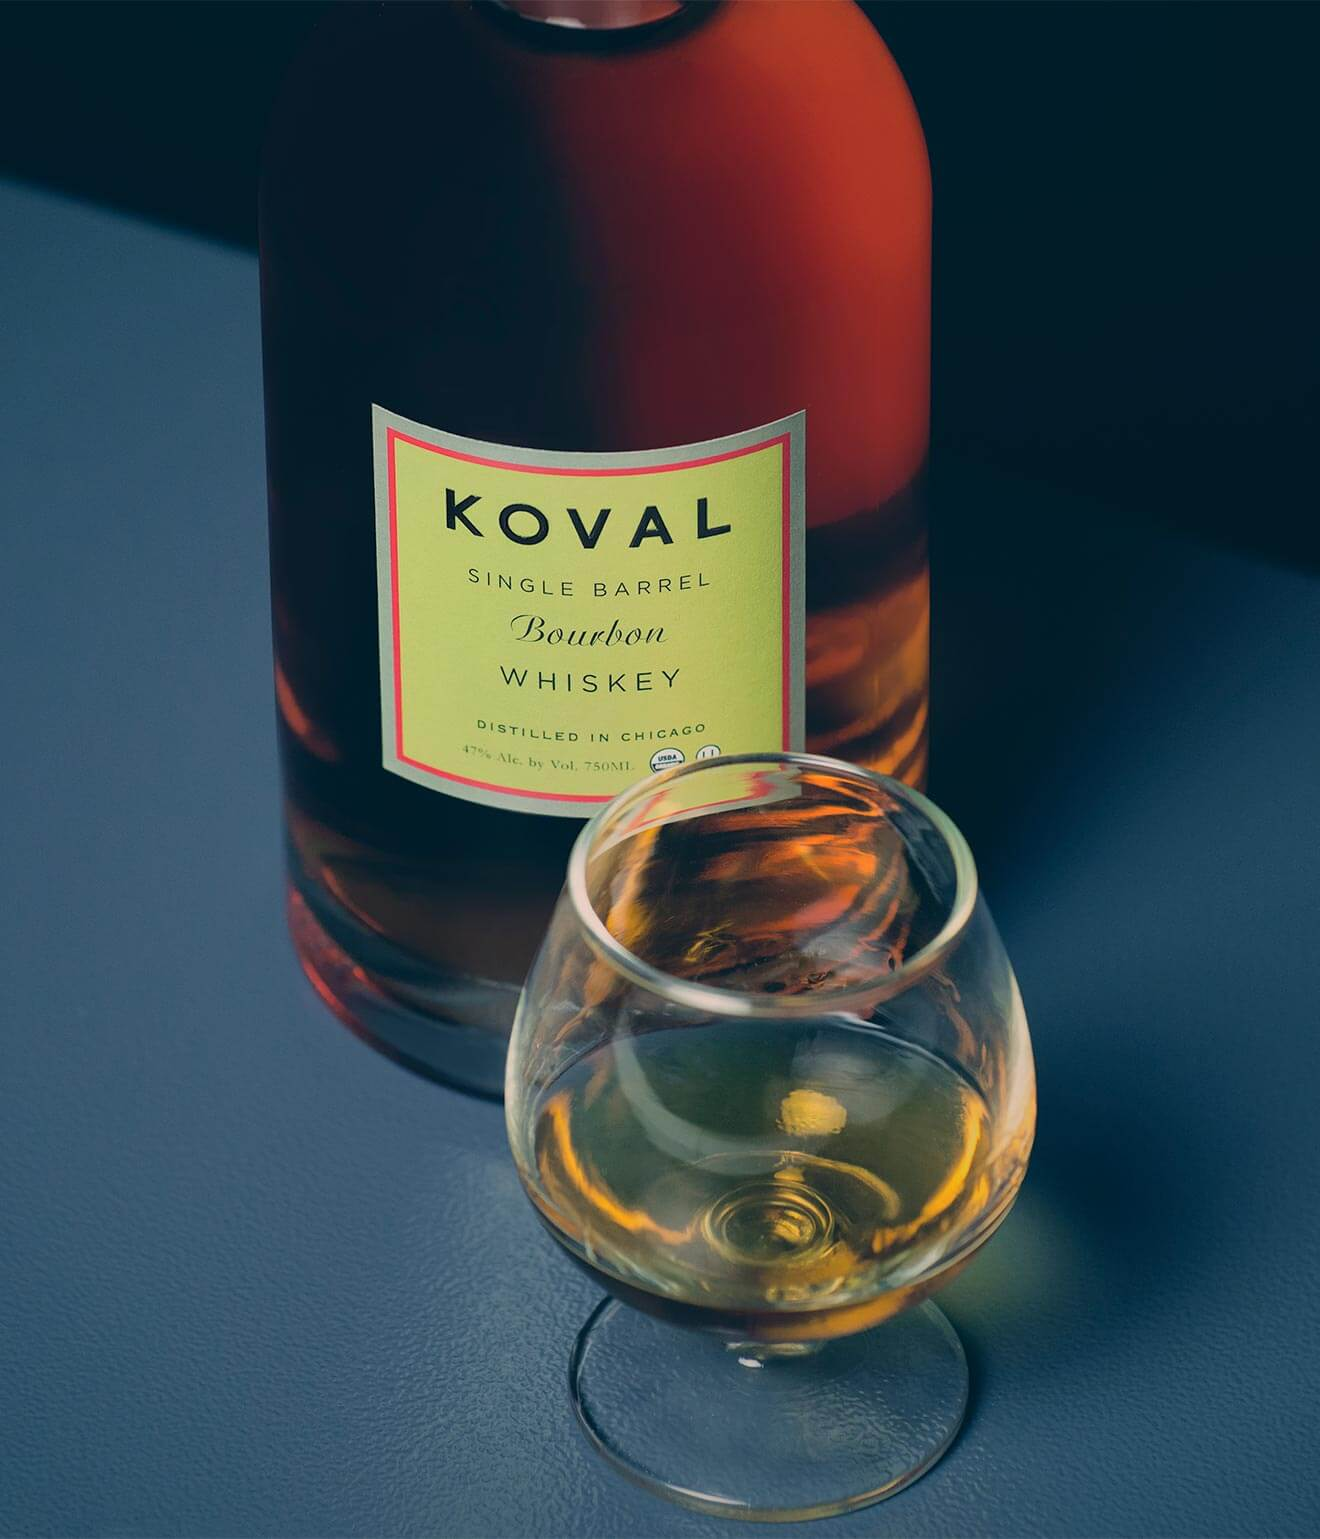 Koval Bourbon, bottle and glass